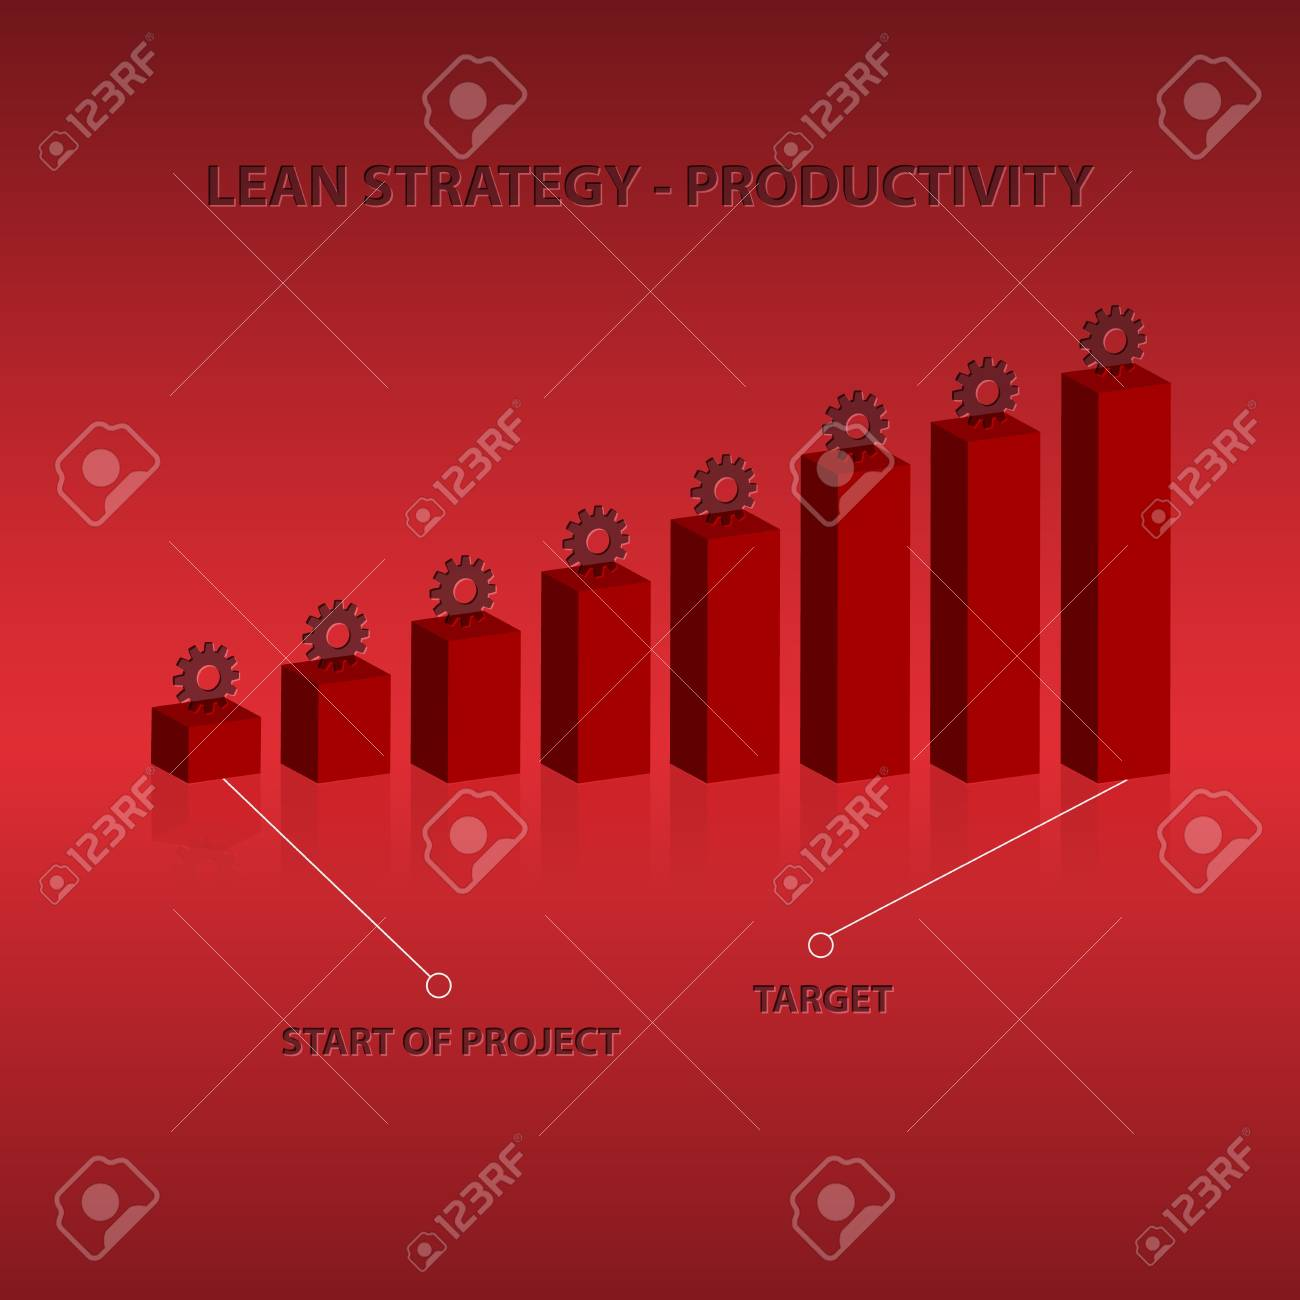 About Productivity stock illustration